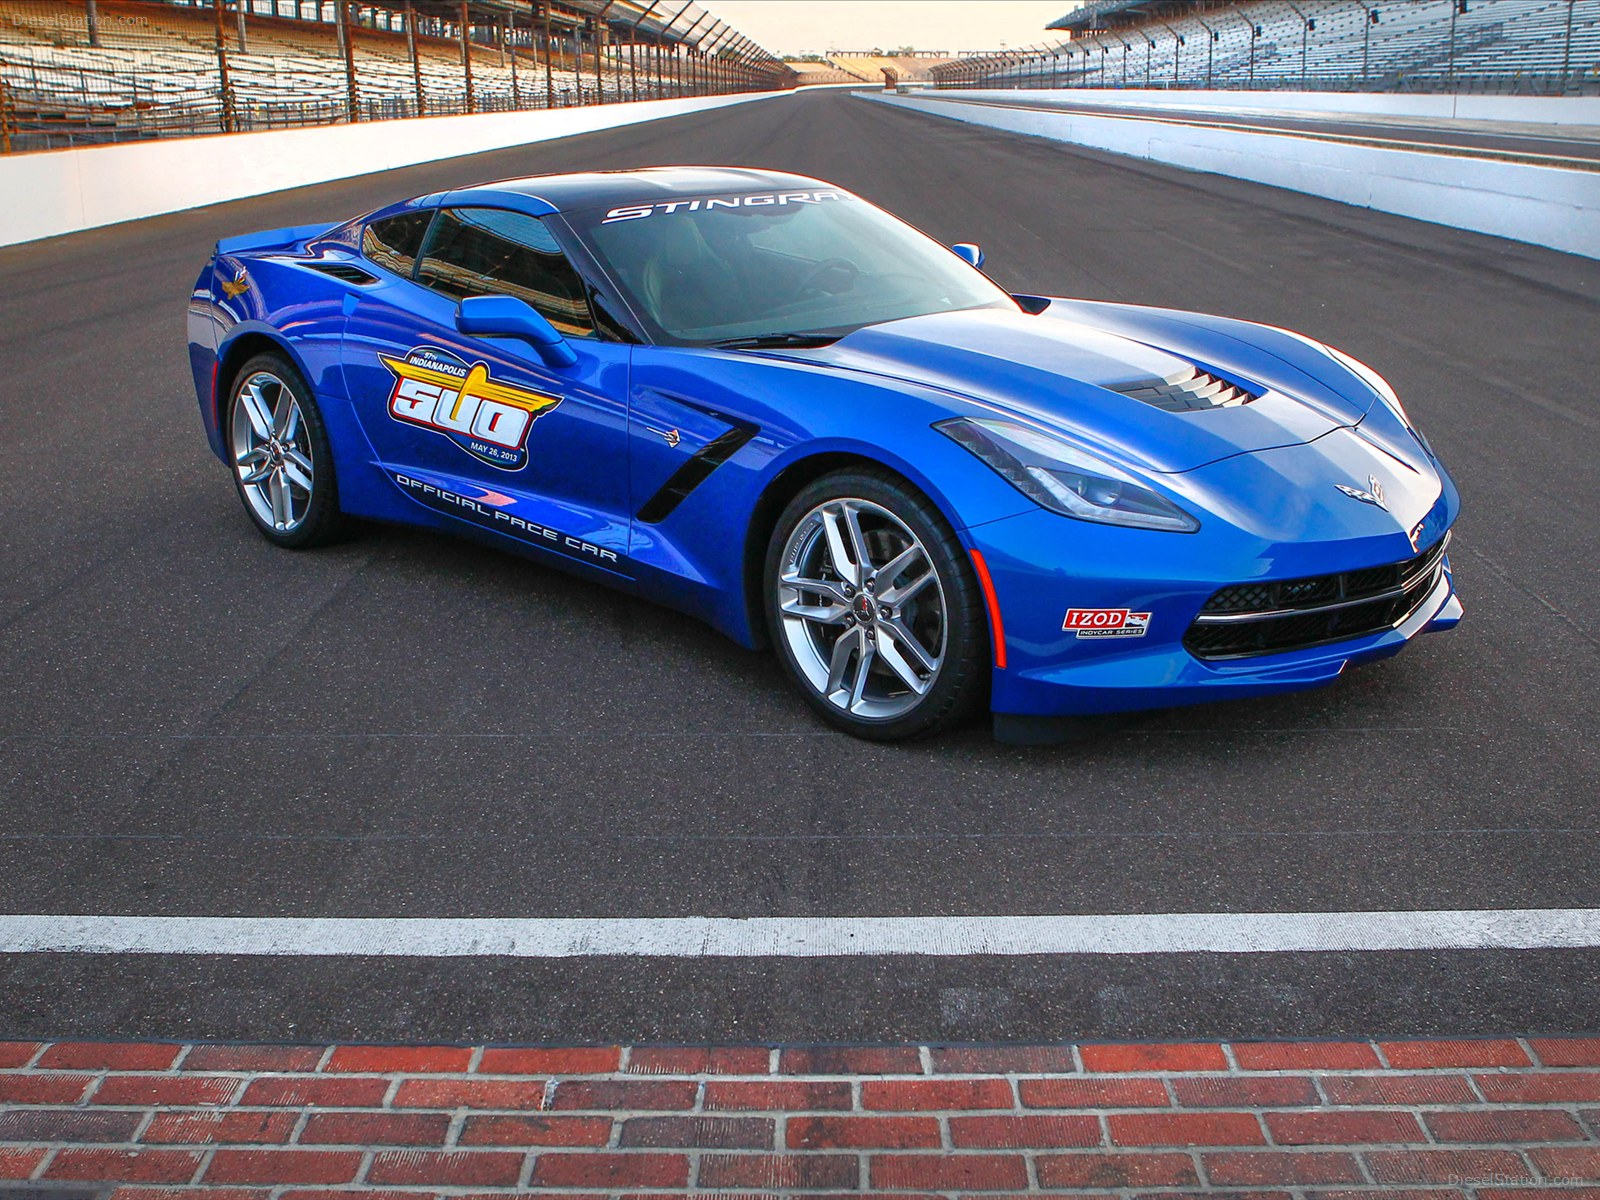 2019 Chevrolet Corvette Stingray Indy 500 Pace Car photo - 4